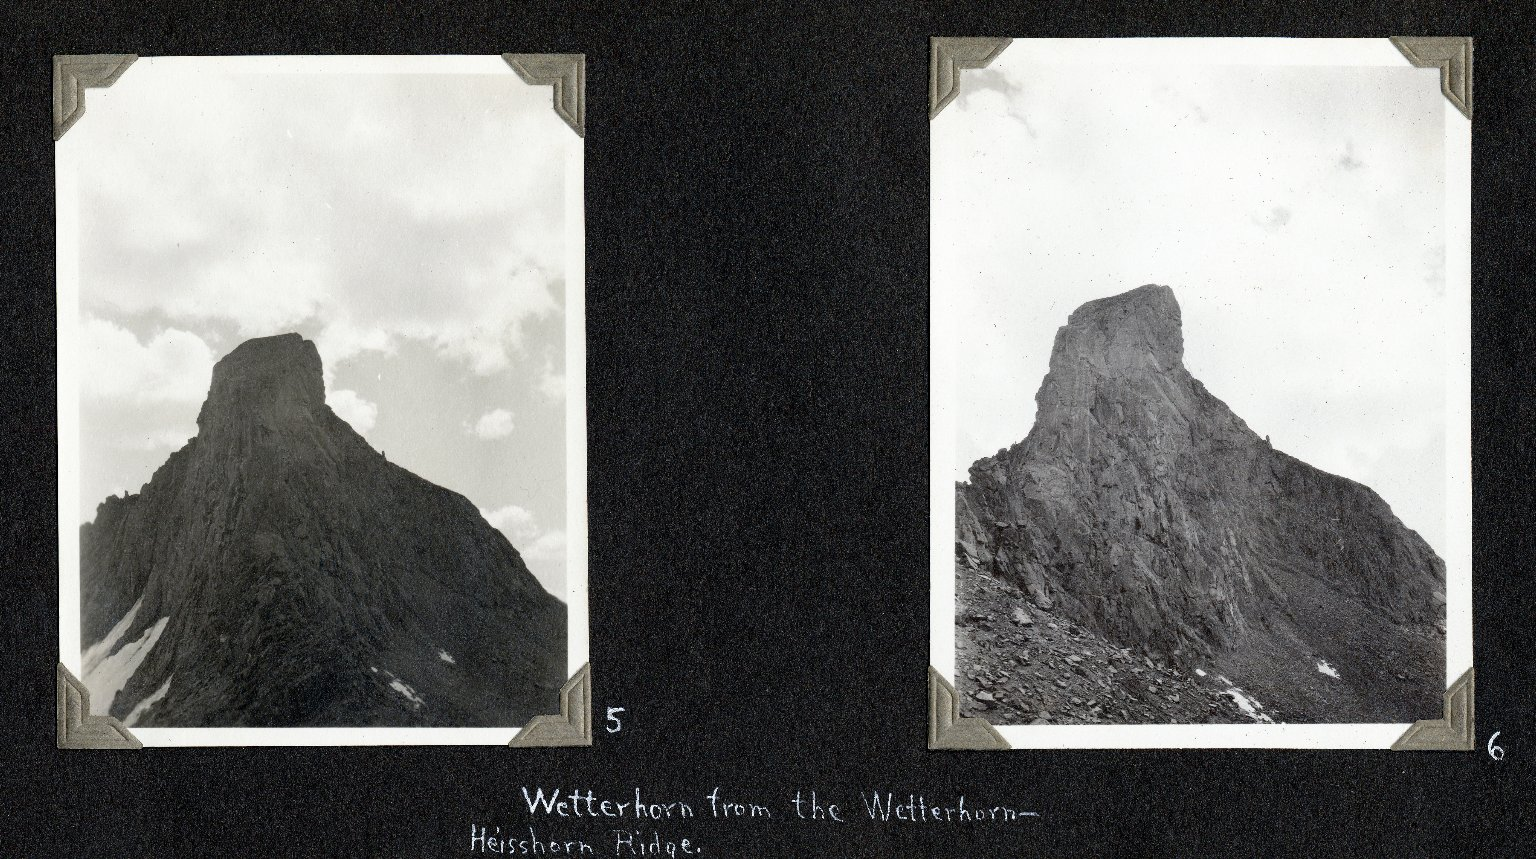 Wetterhorn Peak, seen from Wetterhorn-Heisshorn ridge